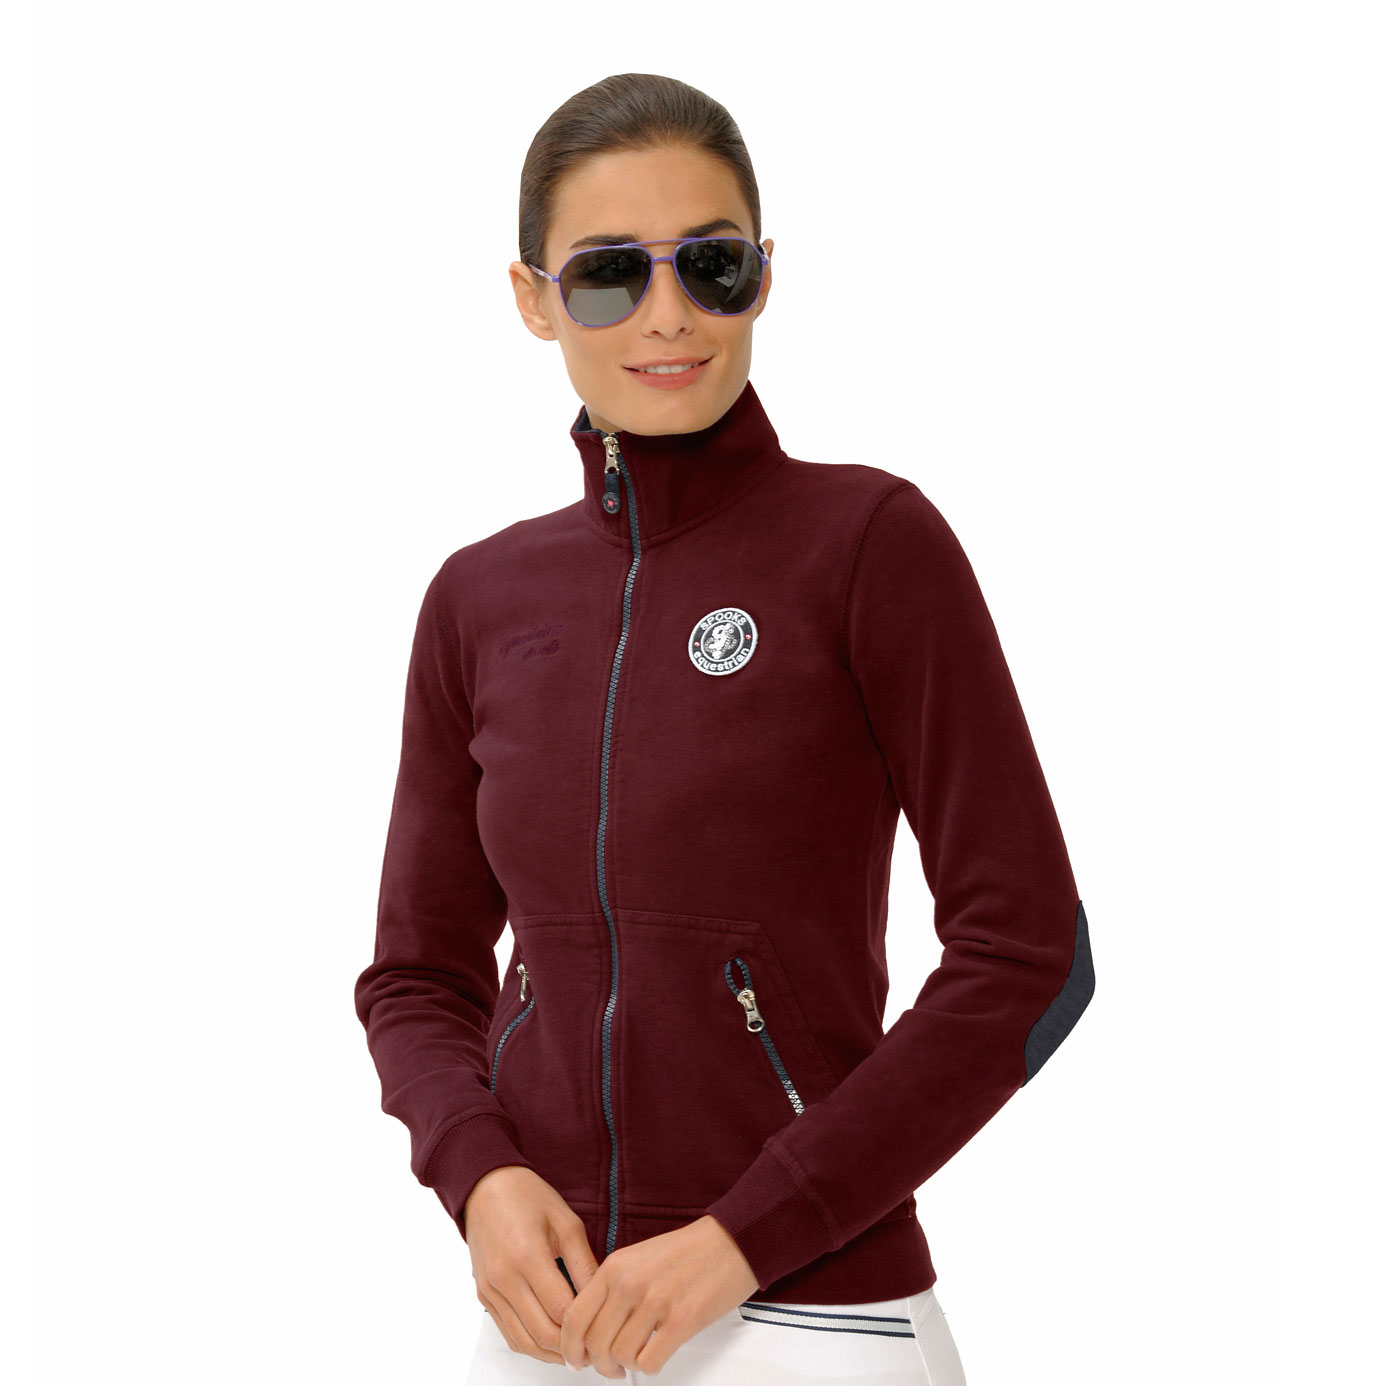 Spooks Marisa Bordeaux Equestrian Sweat Jacket